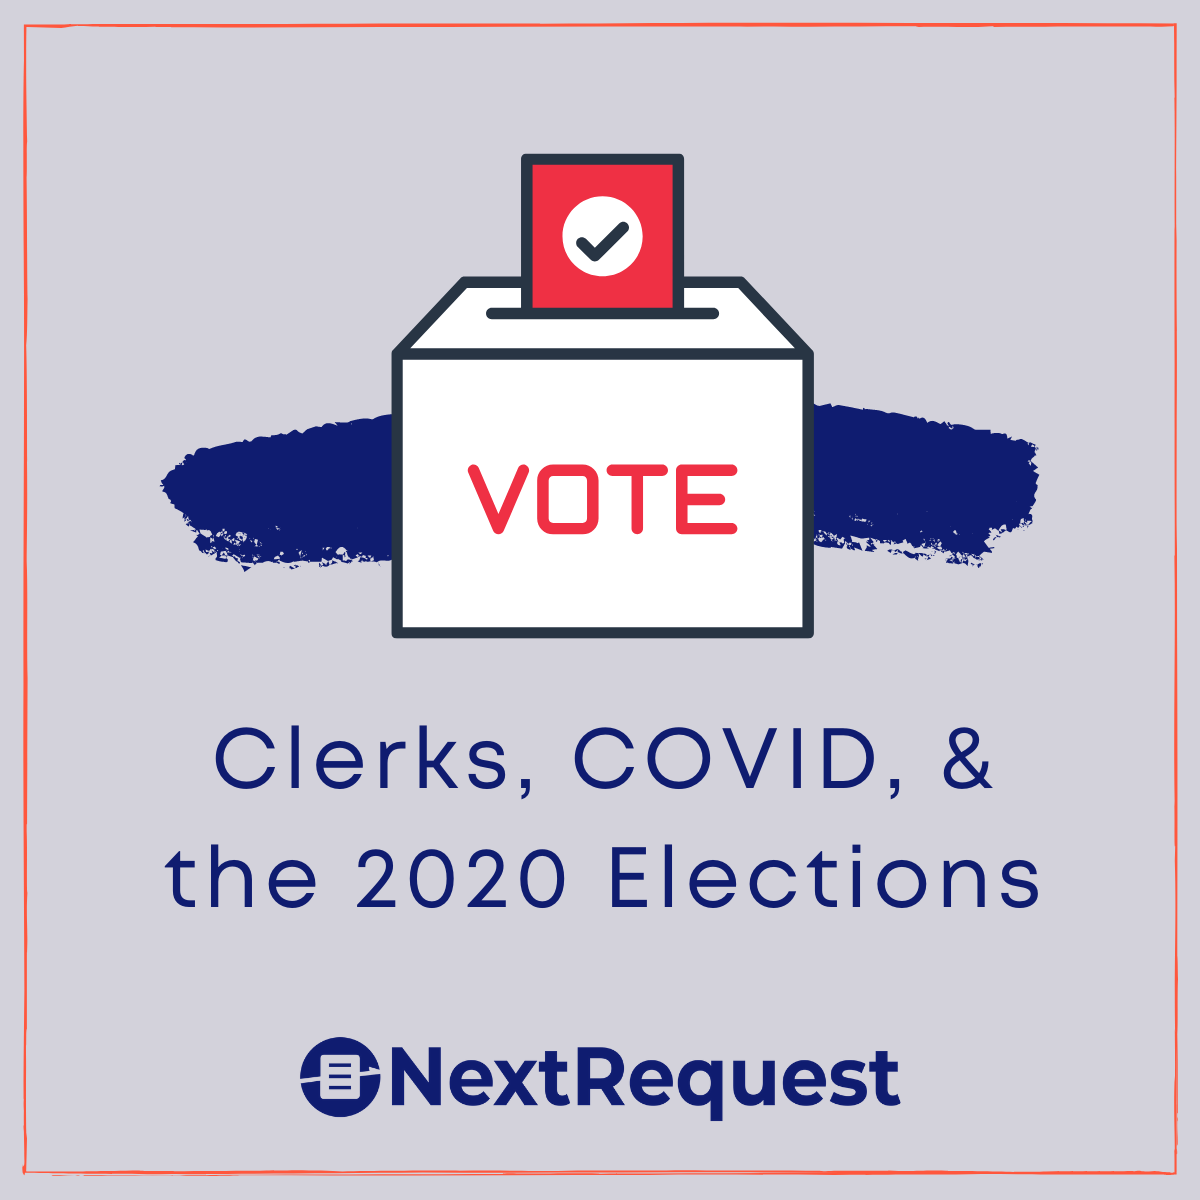 Clerks, COVID, and the 2020 Elections